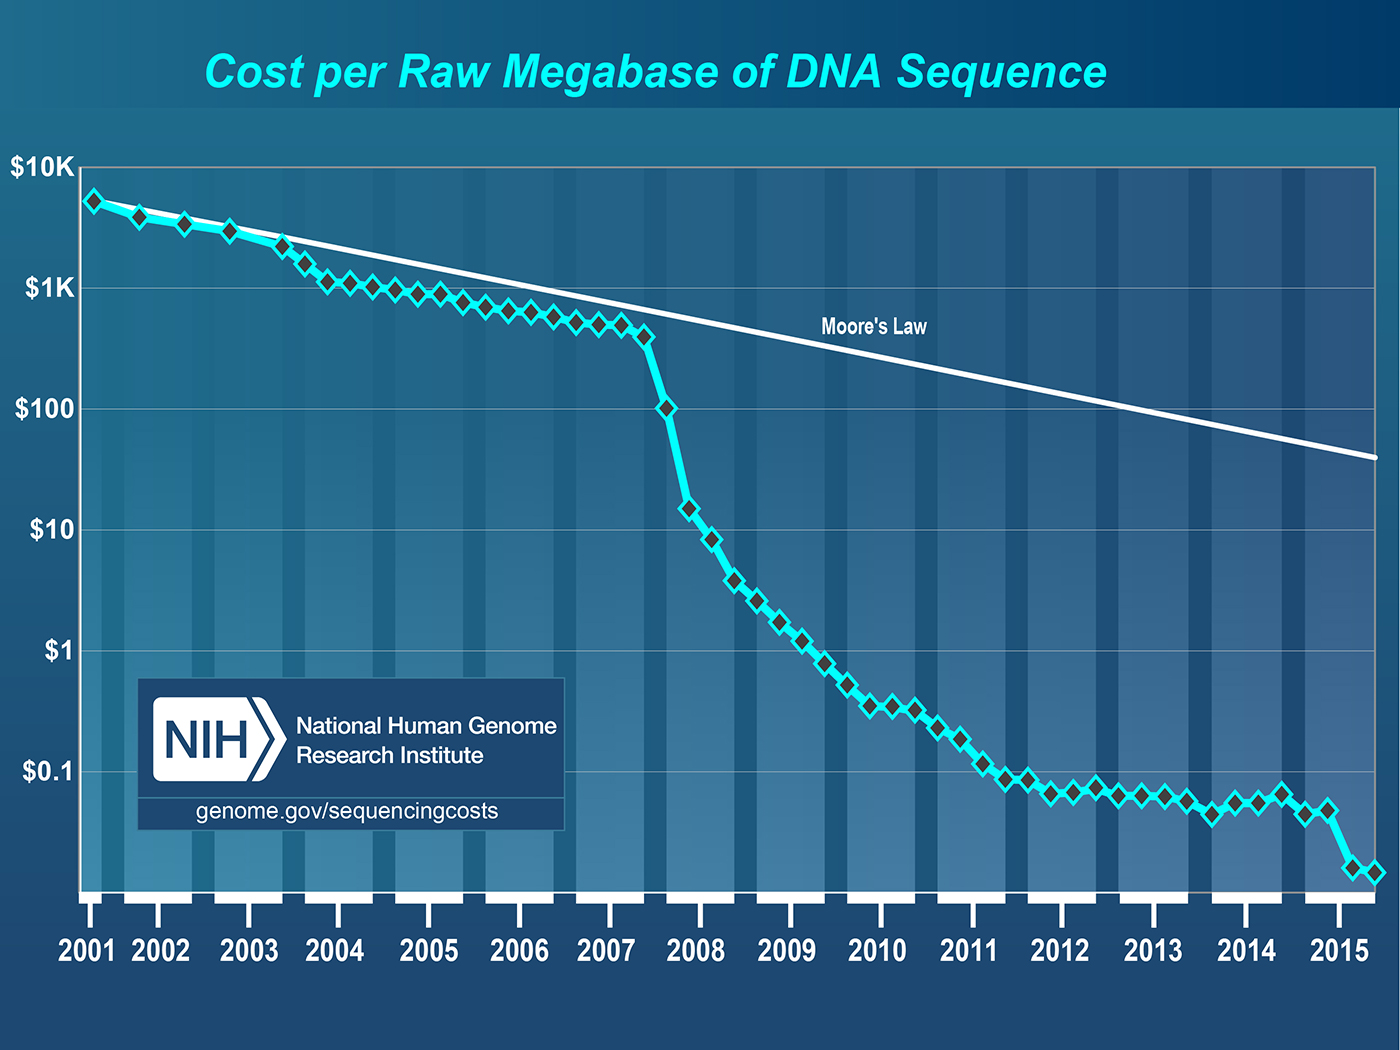 declining cost of DNA sequencing technology